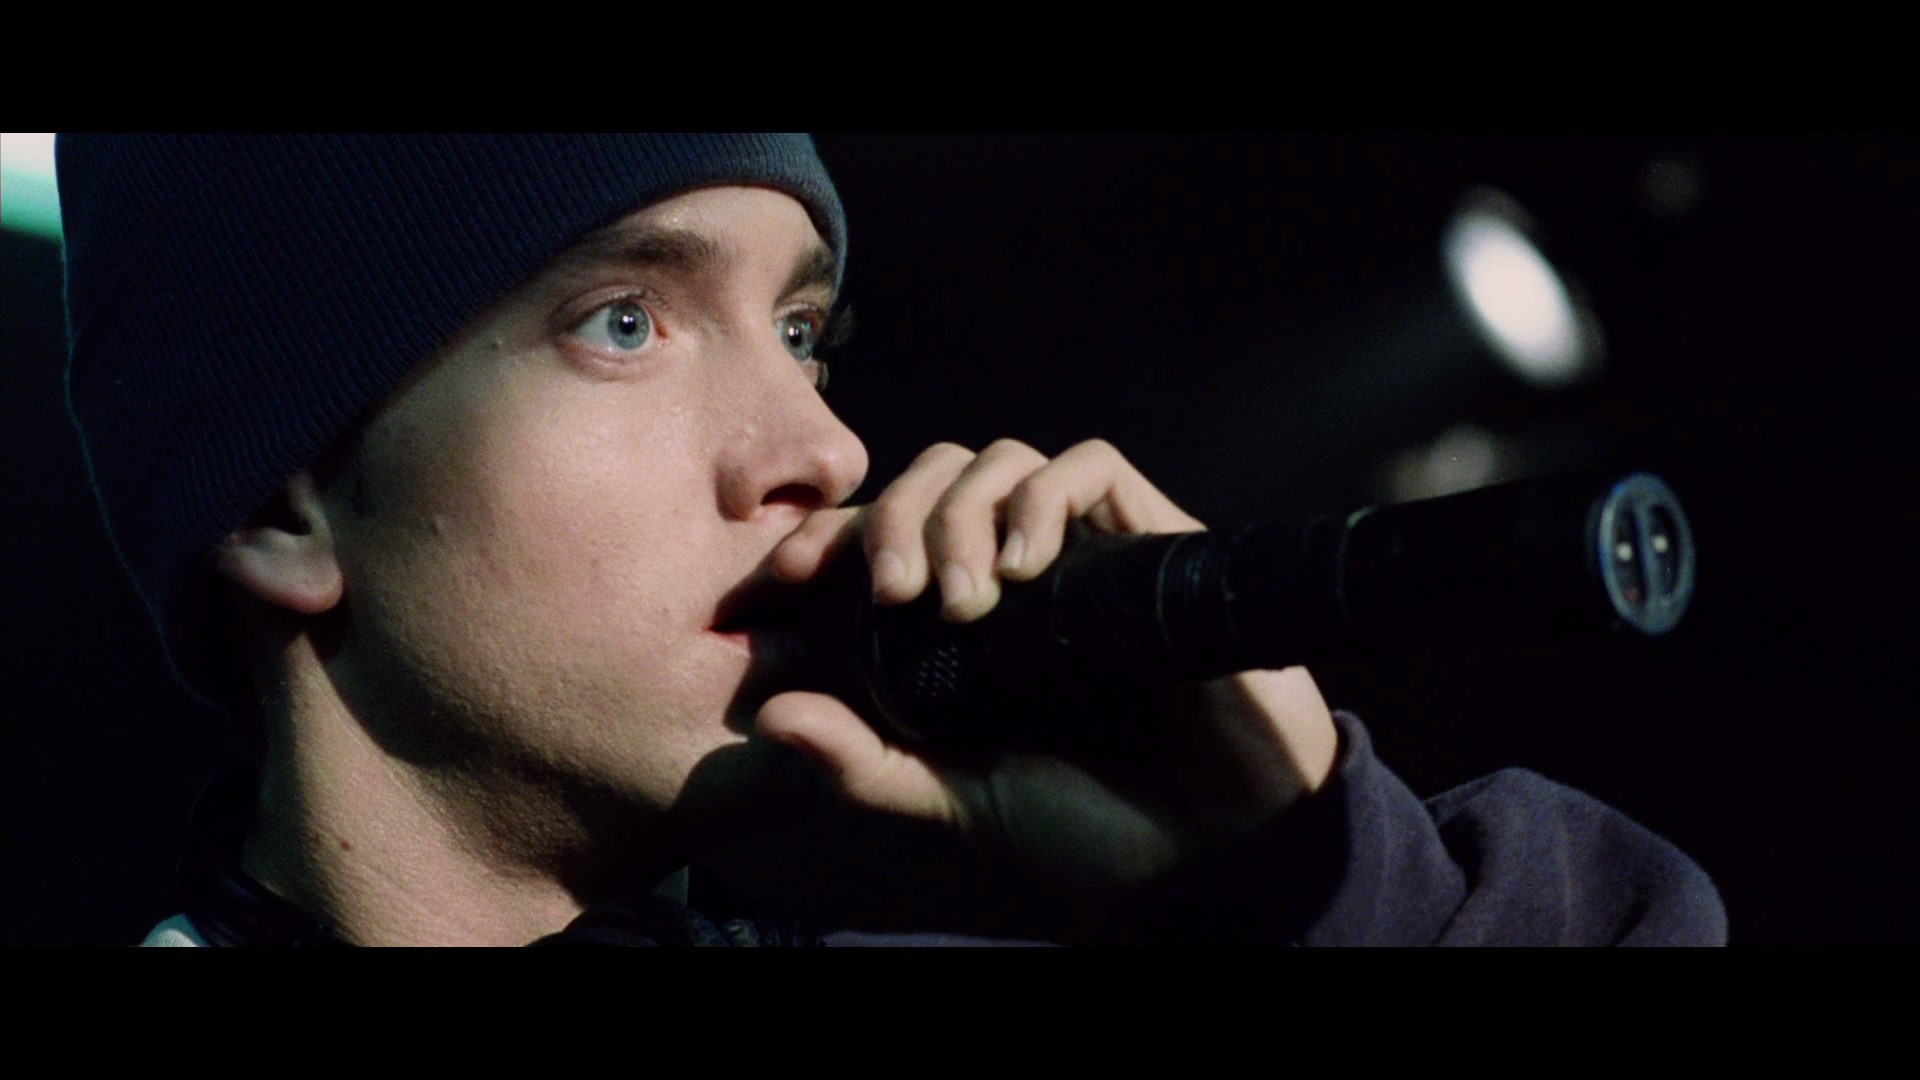 eminem male celebrity wallpapers, backgrounds